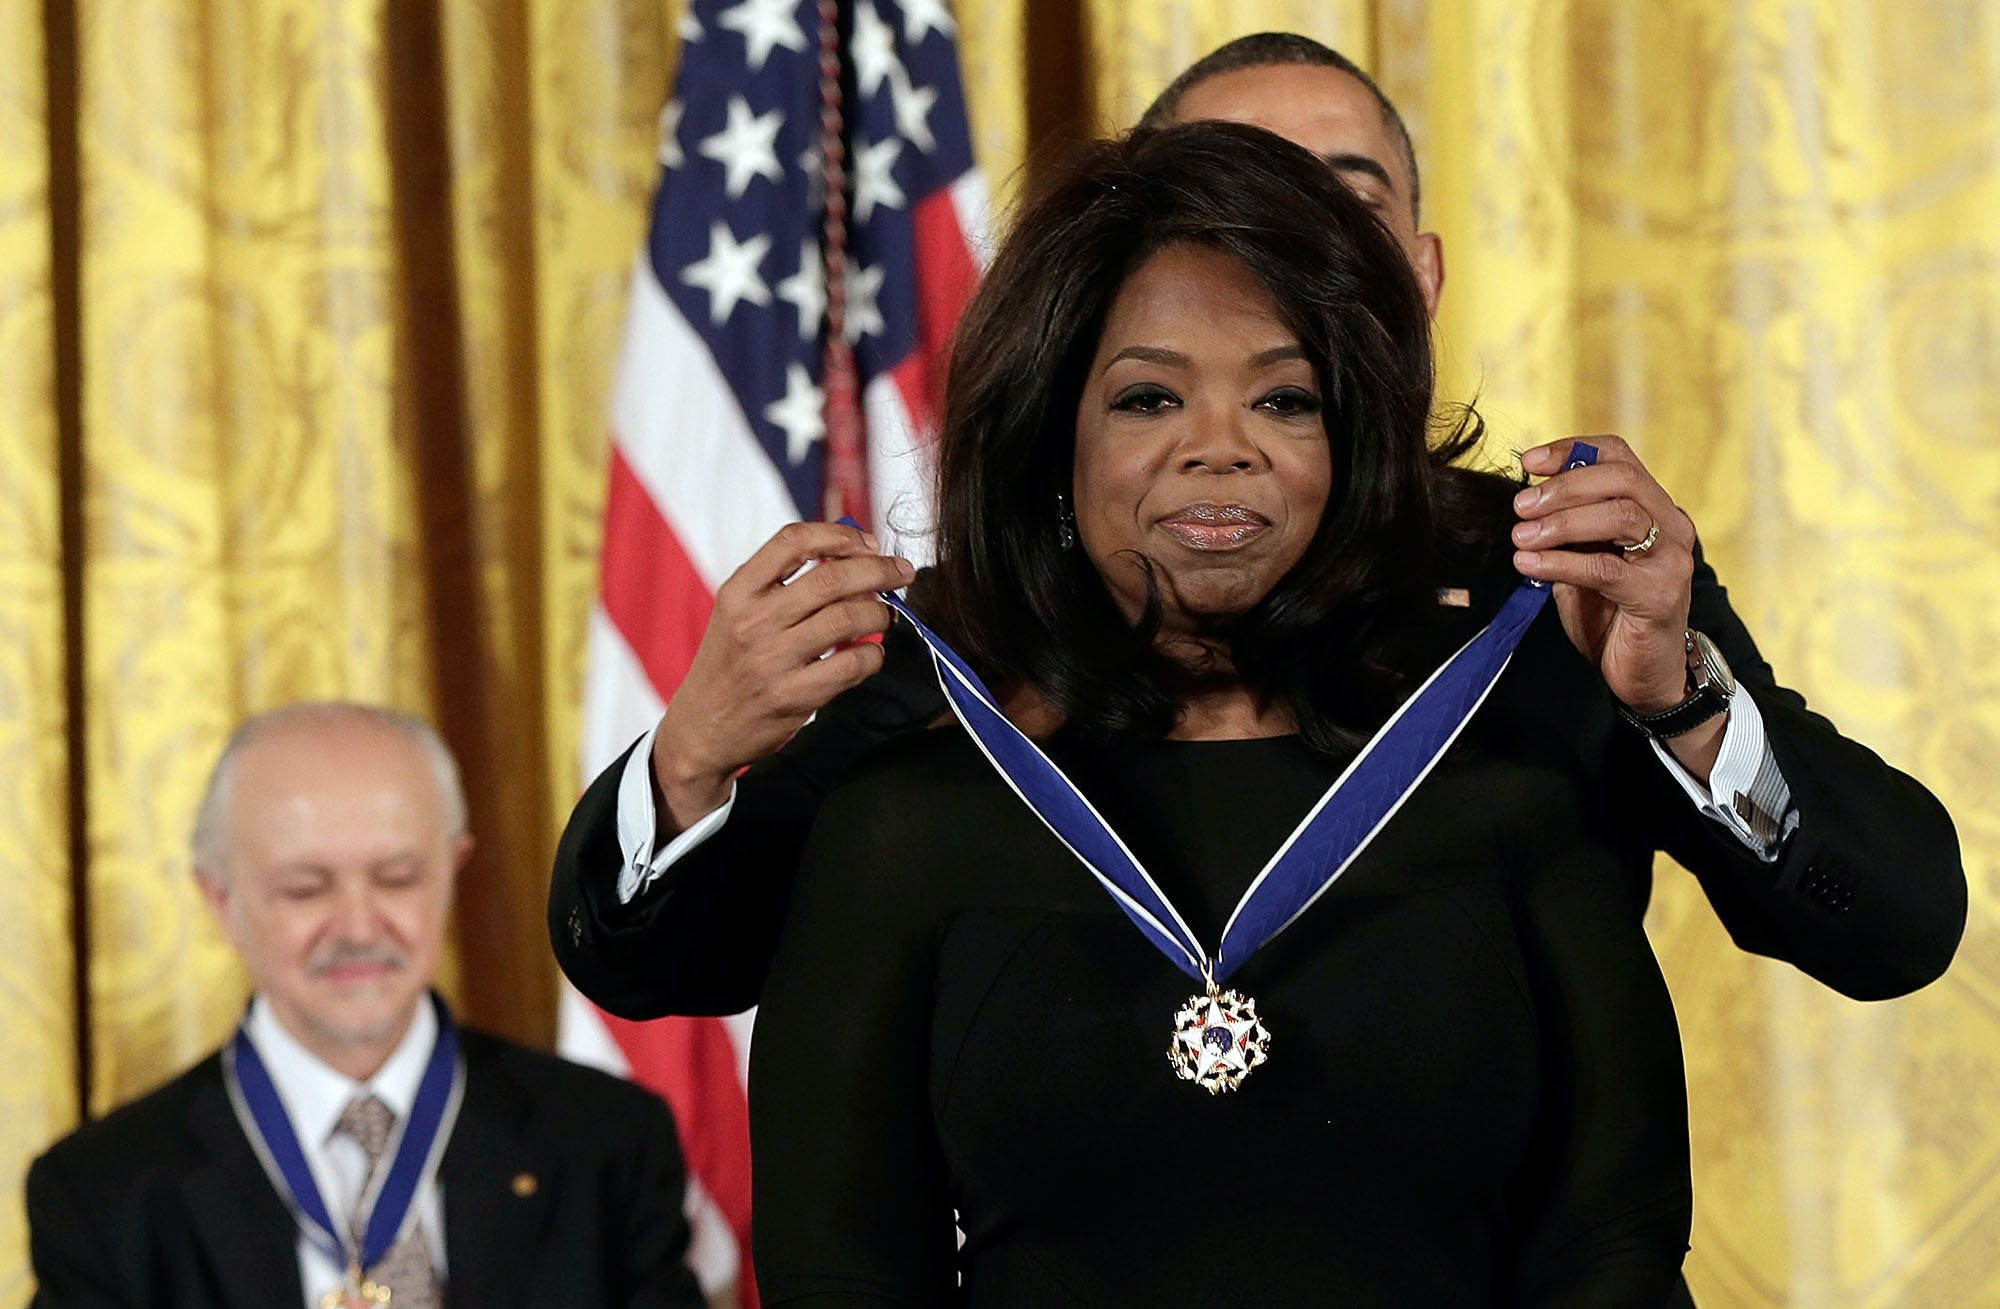 WASHINGTON, DC - NOVEMBER 20:  U.S. President Barack Obama awards the Presidential Medal of Freedom to Oprah Winfrey in the East Room at the White House on November 20, 2013 in Washington, DC. The Presidential Medal of Freedom is the nation's highest civilian honor, presented to individuals who have made meritorious contributions to the security or national interests of the United States, to world peace, or to cultural or other significant public or private endeavors. Also pictured is Mario Molina (L). (Photo by Win McNamee/Getty Images)